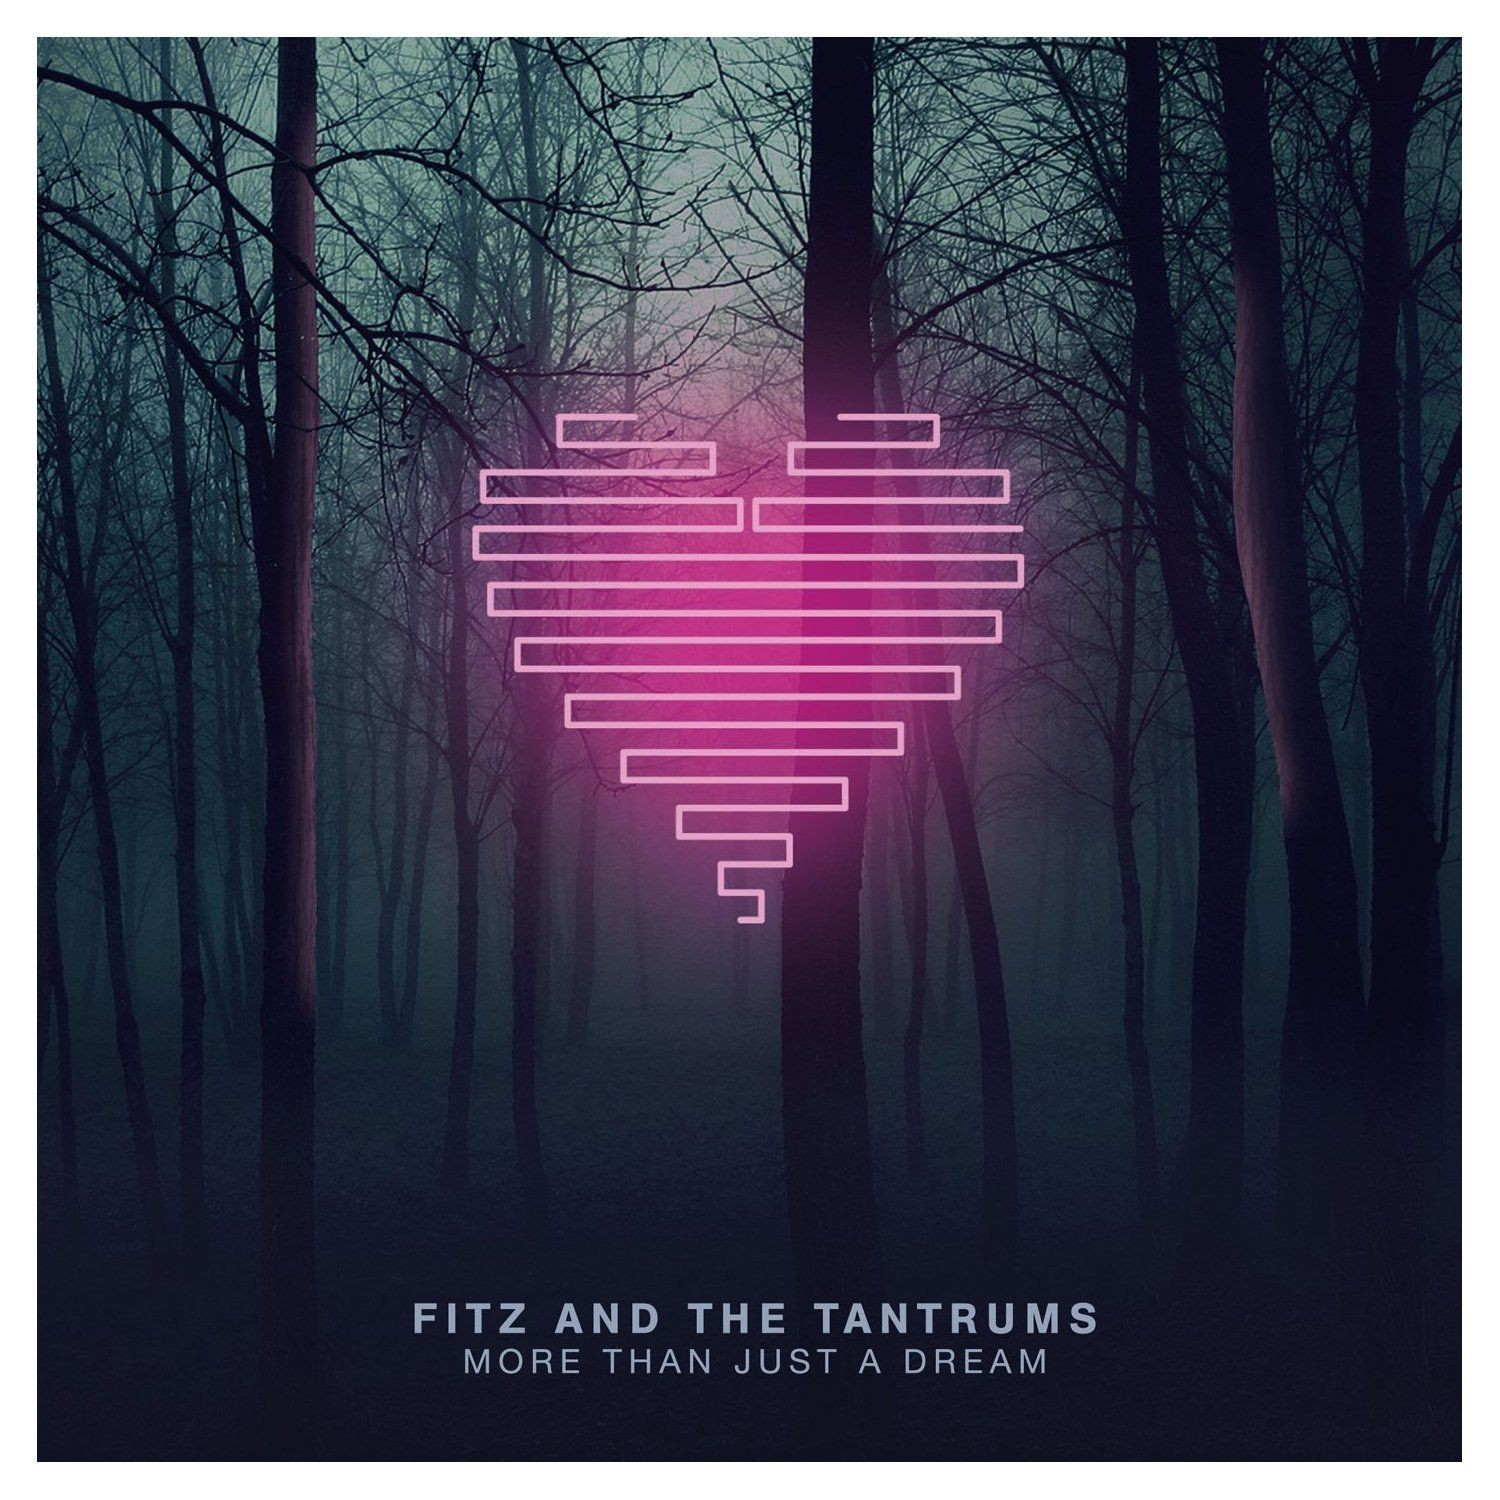 More Than Just a Dream Fitz & the Tantrums